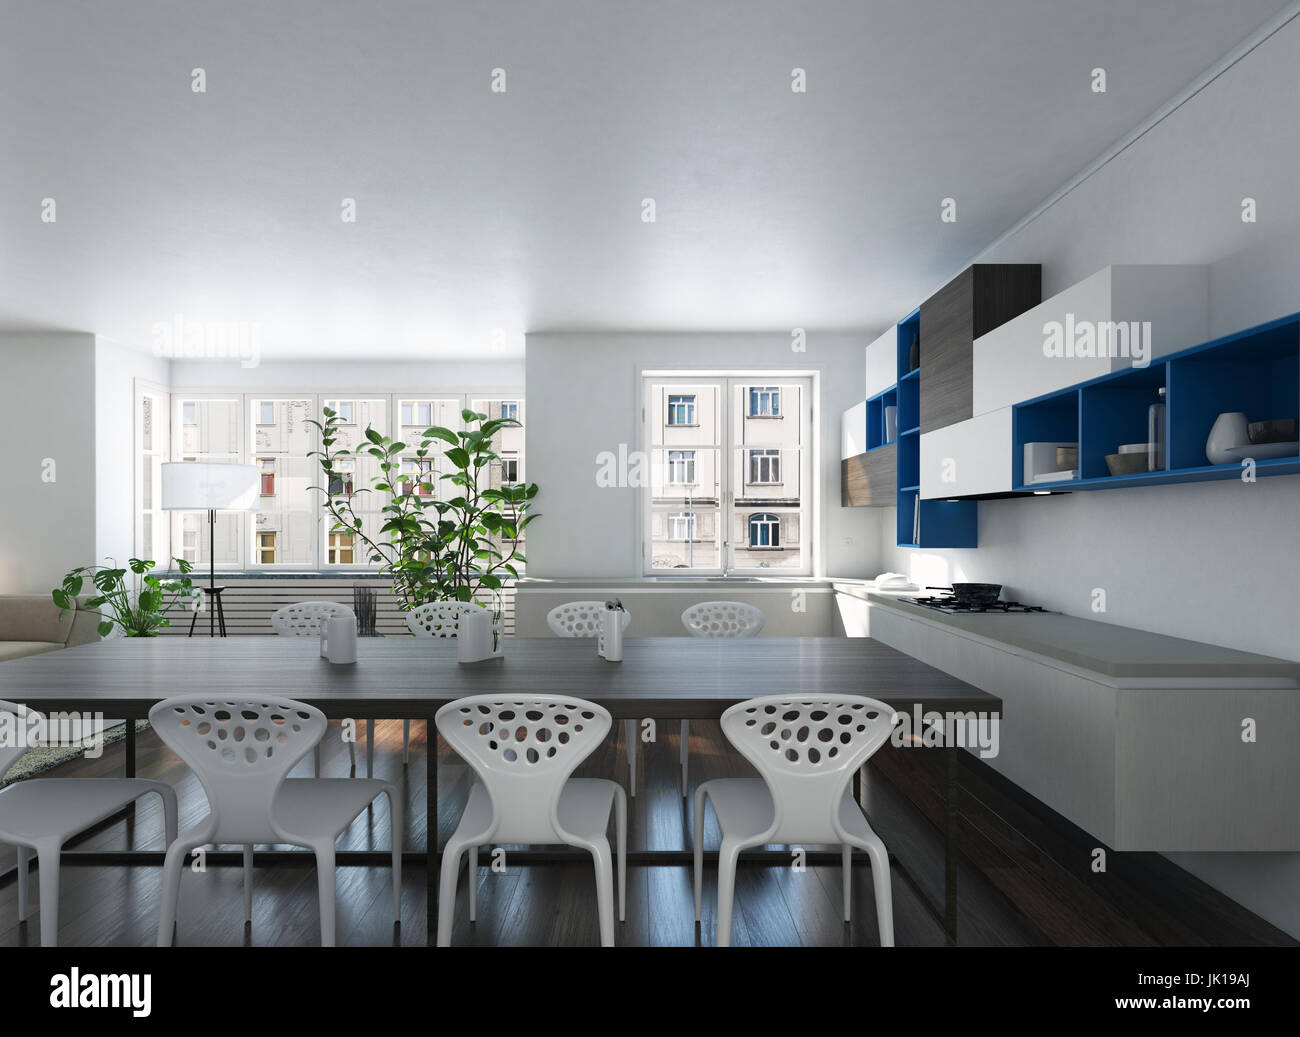 3d render of a modern spacious open plan kitchen dining room with     3d render of a modern spacious open plan kitchen dining room with stylish  contemporary furniture and potted plants in white and black decor